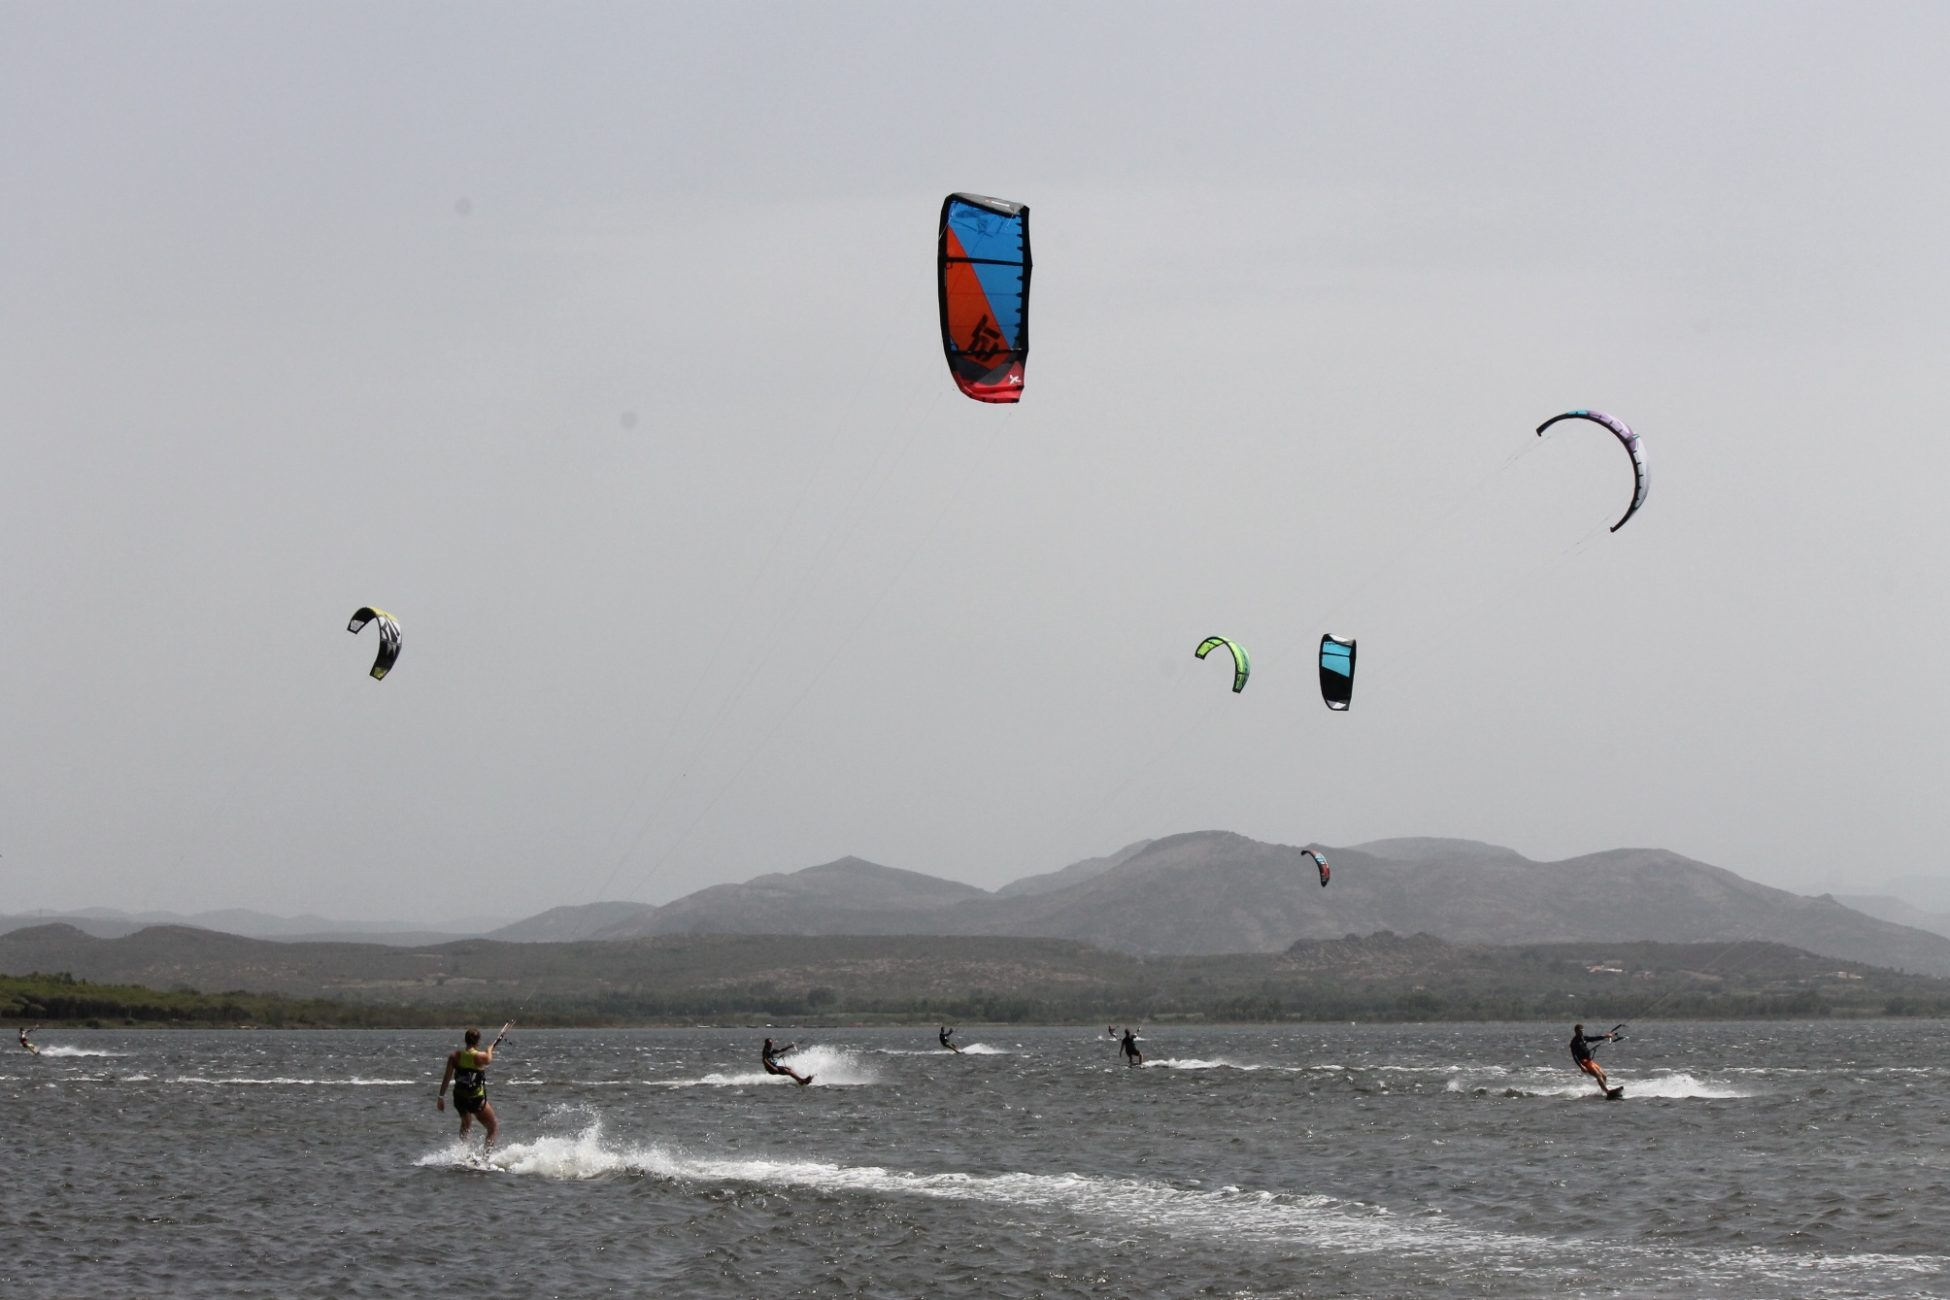 Kitesurfing Punta Trettu, Sardinia. Punta Trettu is one of the Beast Spot to Kitesurf Sardinia